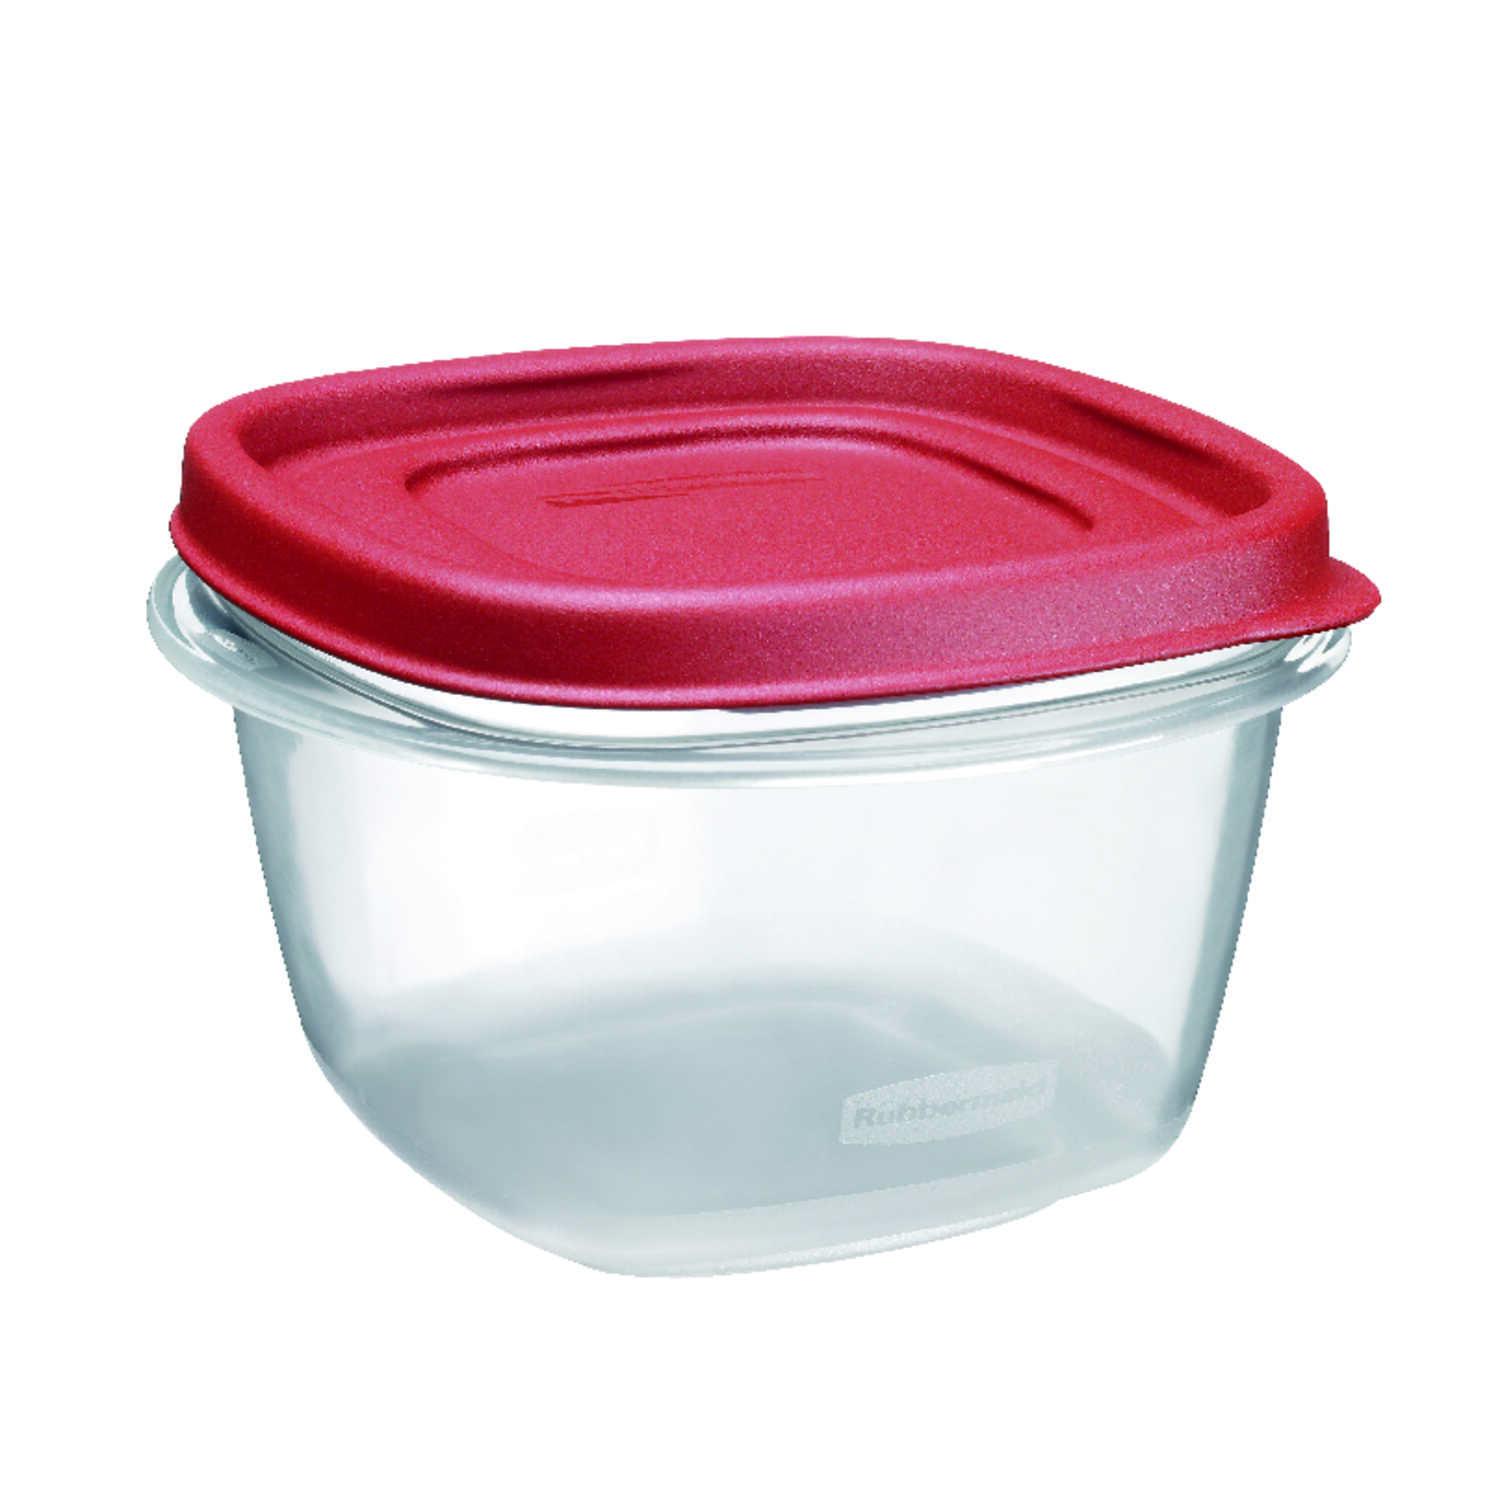 Rubbermaid  Food Storage Container  2 cups